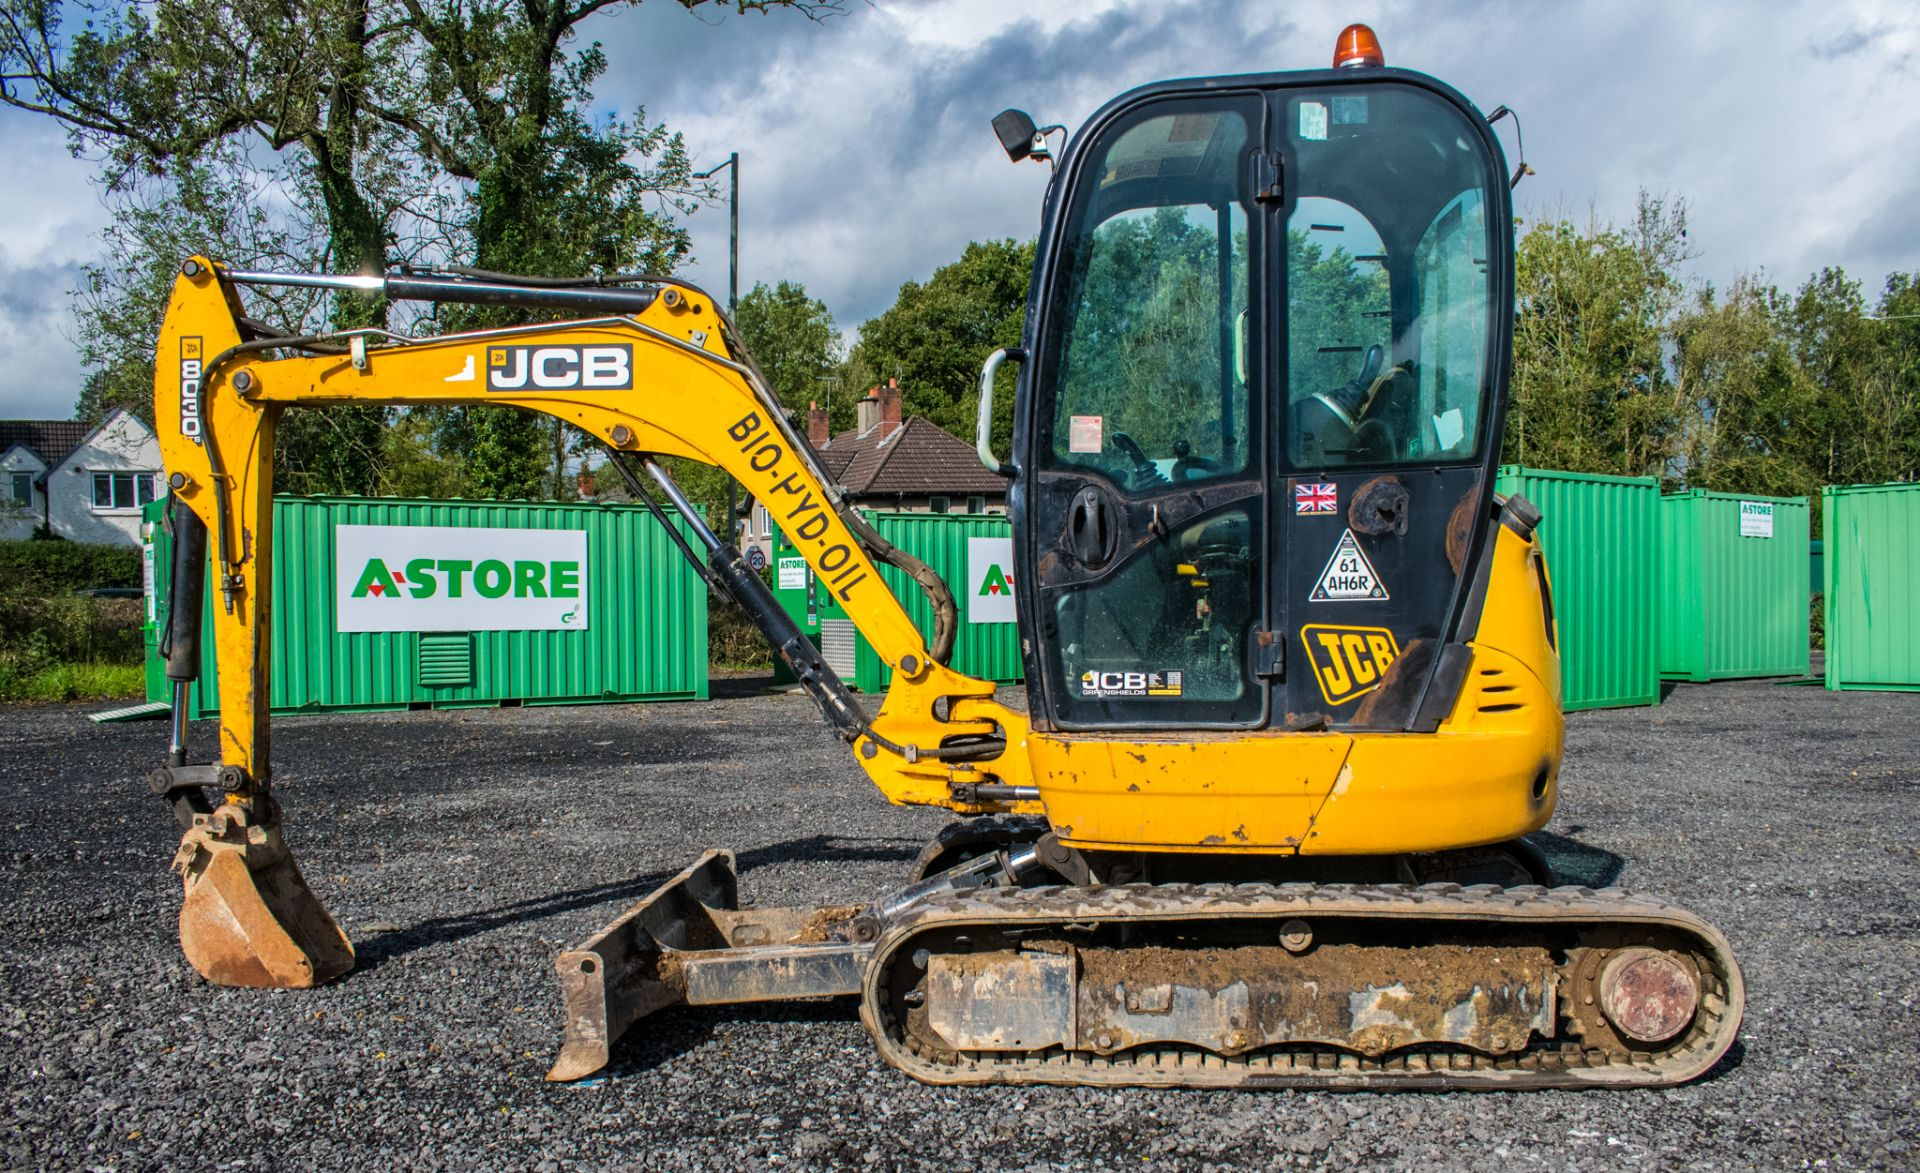 Lot 10 - JCB 8030 ZTS 3 tonne zero tail swing rubber tracked excavator Year: 2013 S/N: 2021812 Recorded